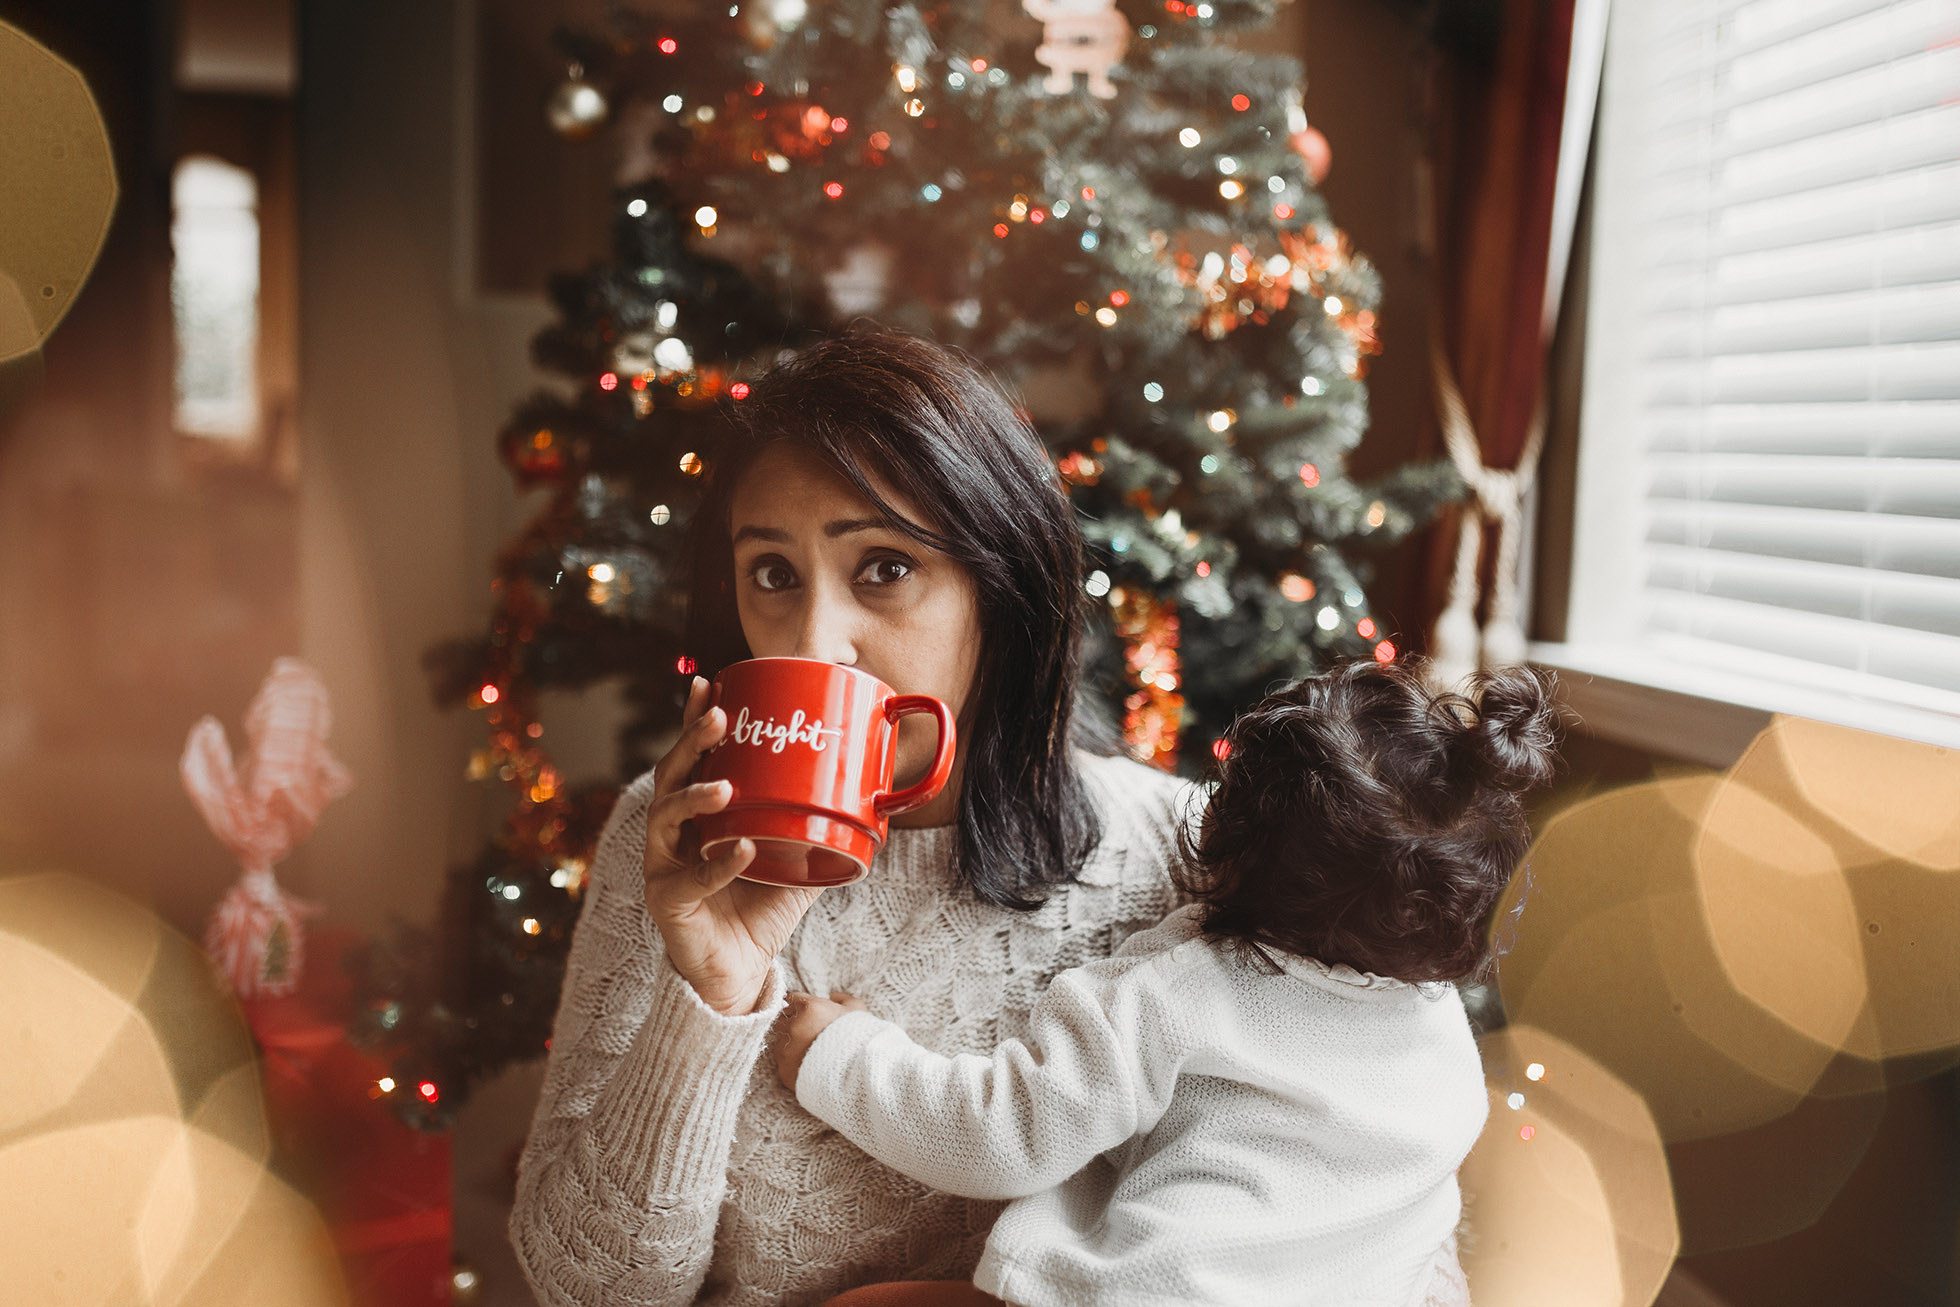 woman holding child and red coffee mug in front of christmas tree jyo bhamadipati